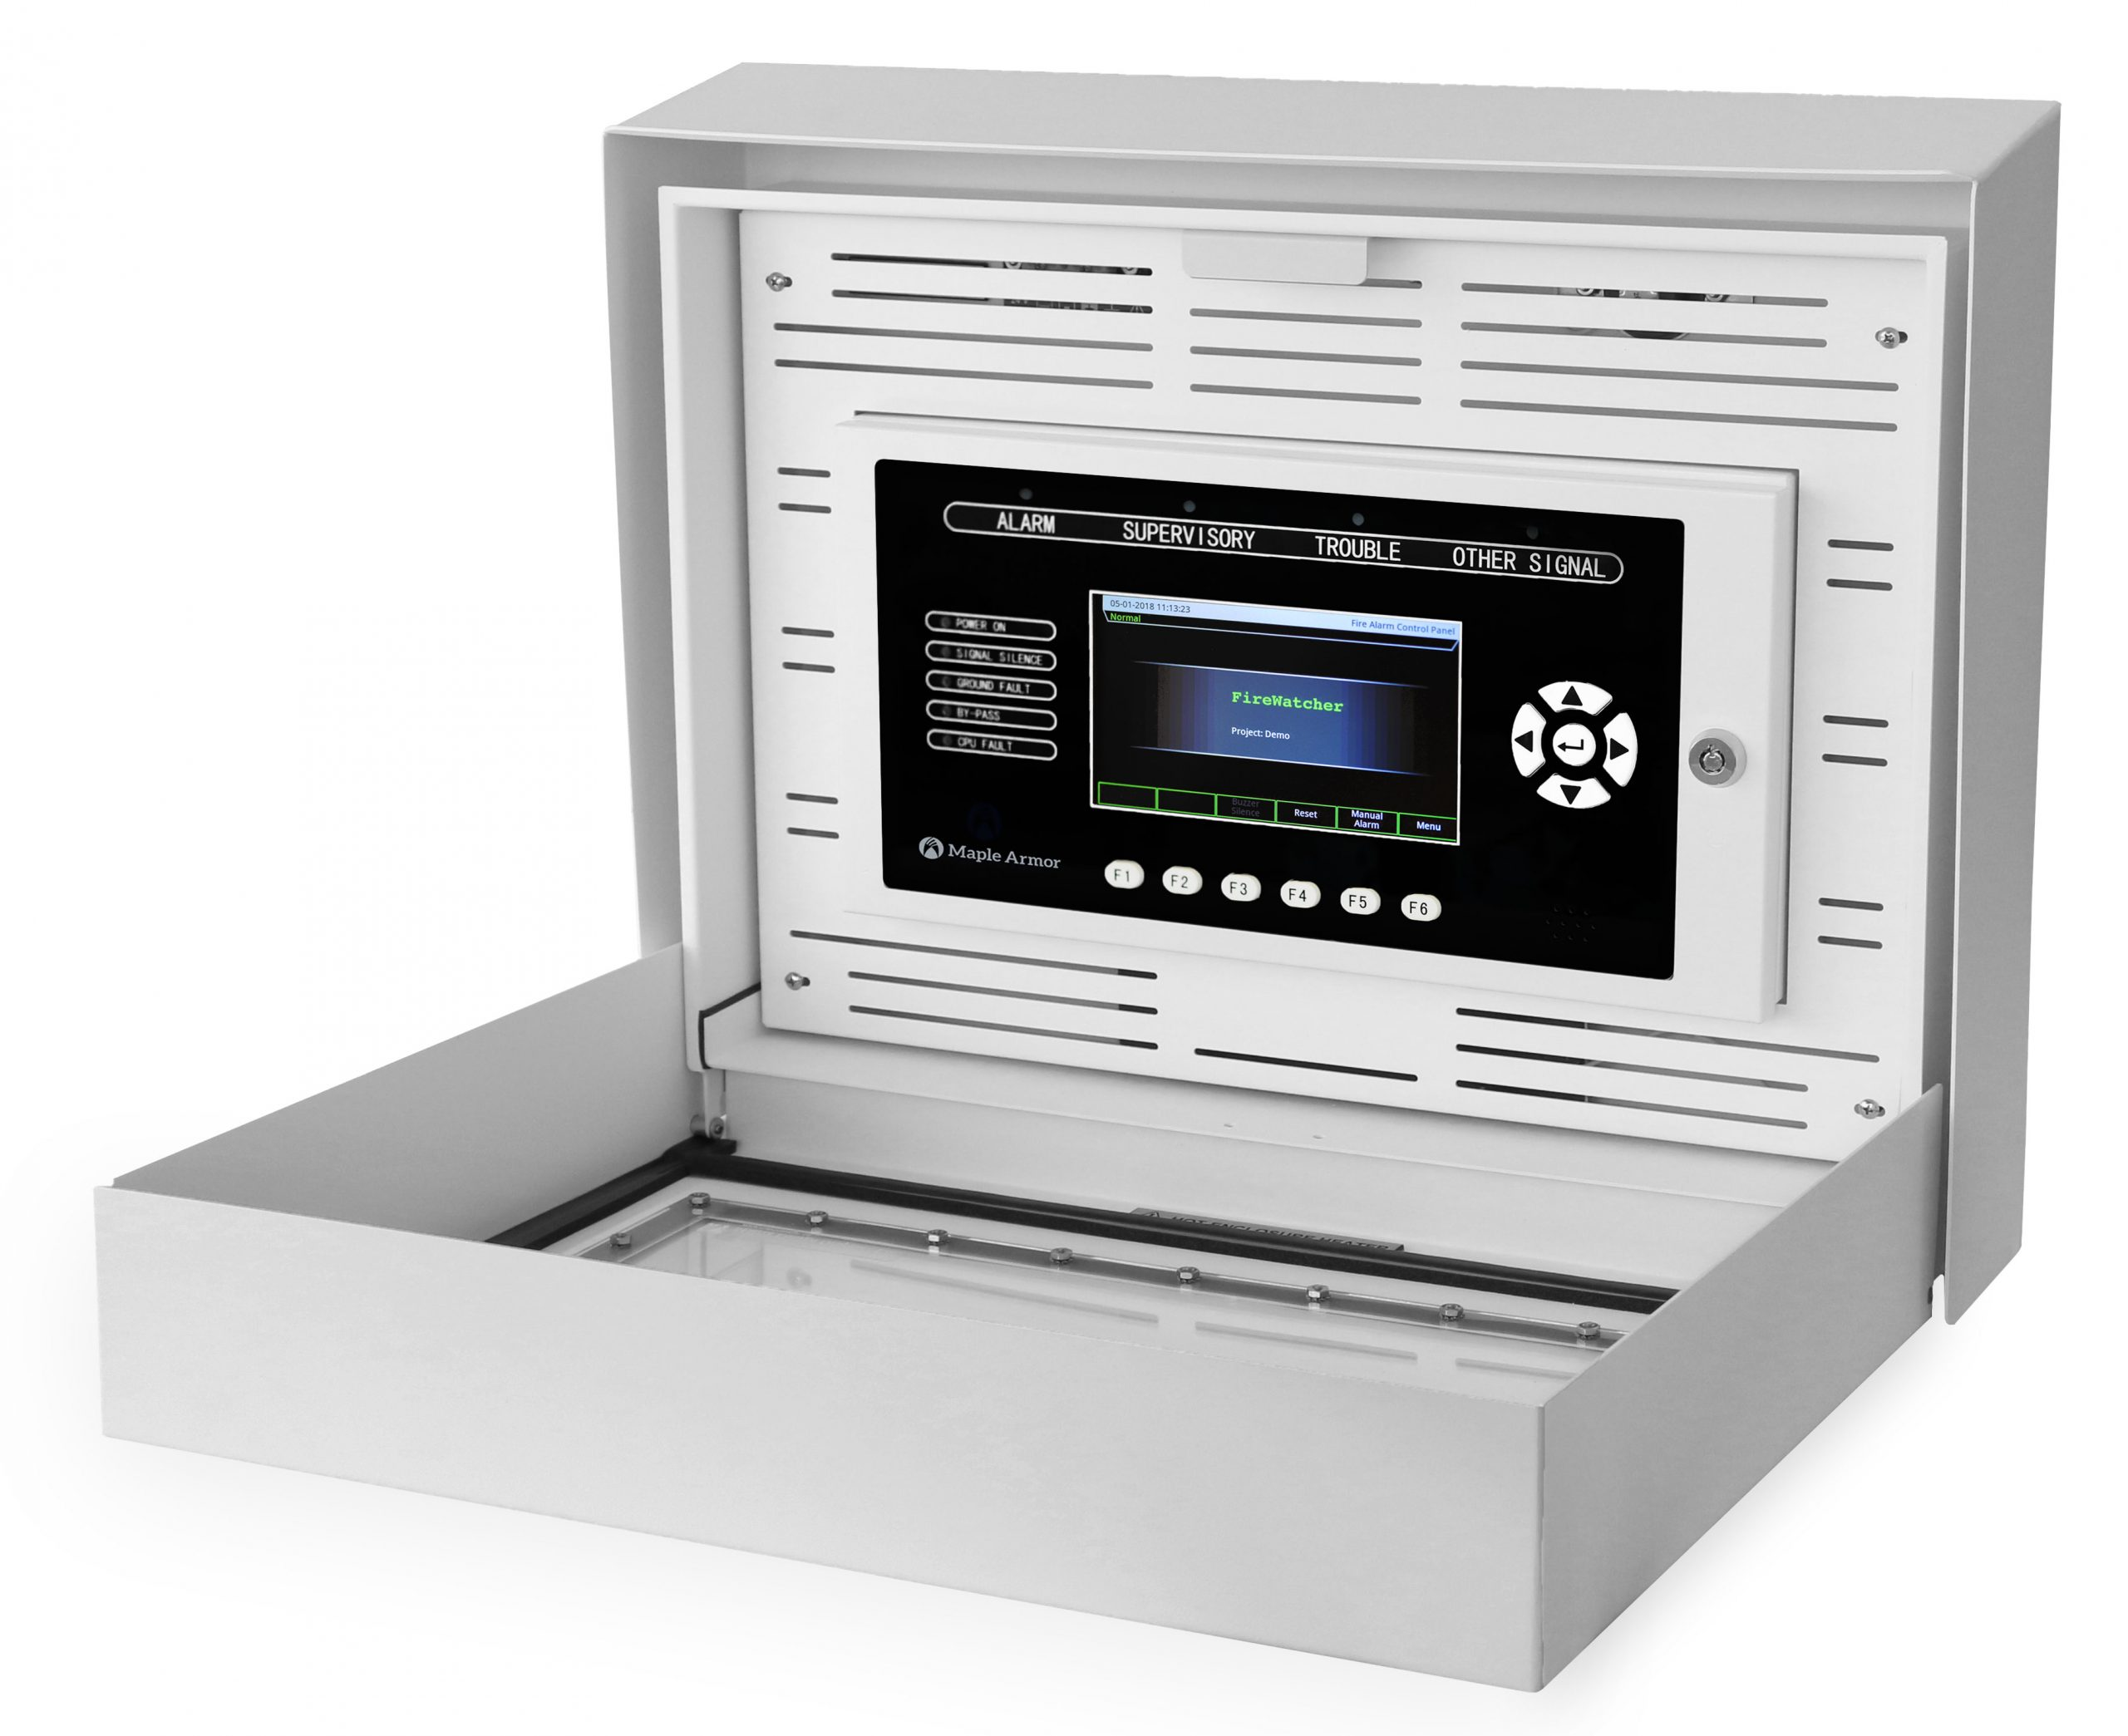 Weatherproof Annunciator Enclosure for outdoor applications